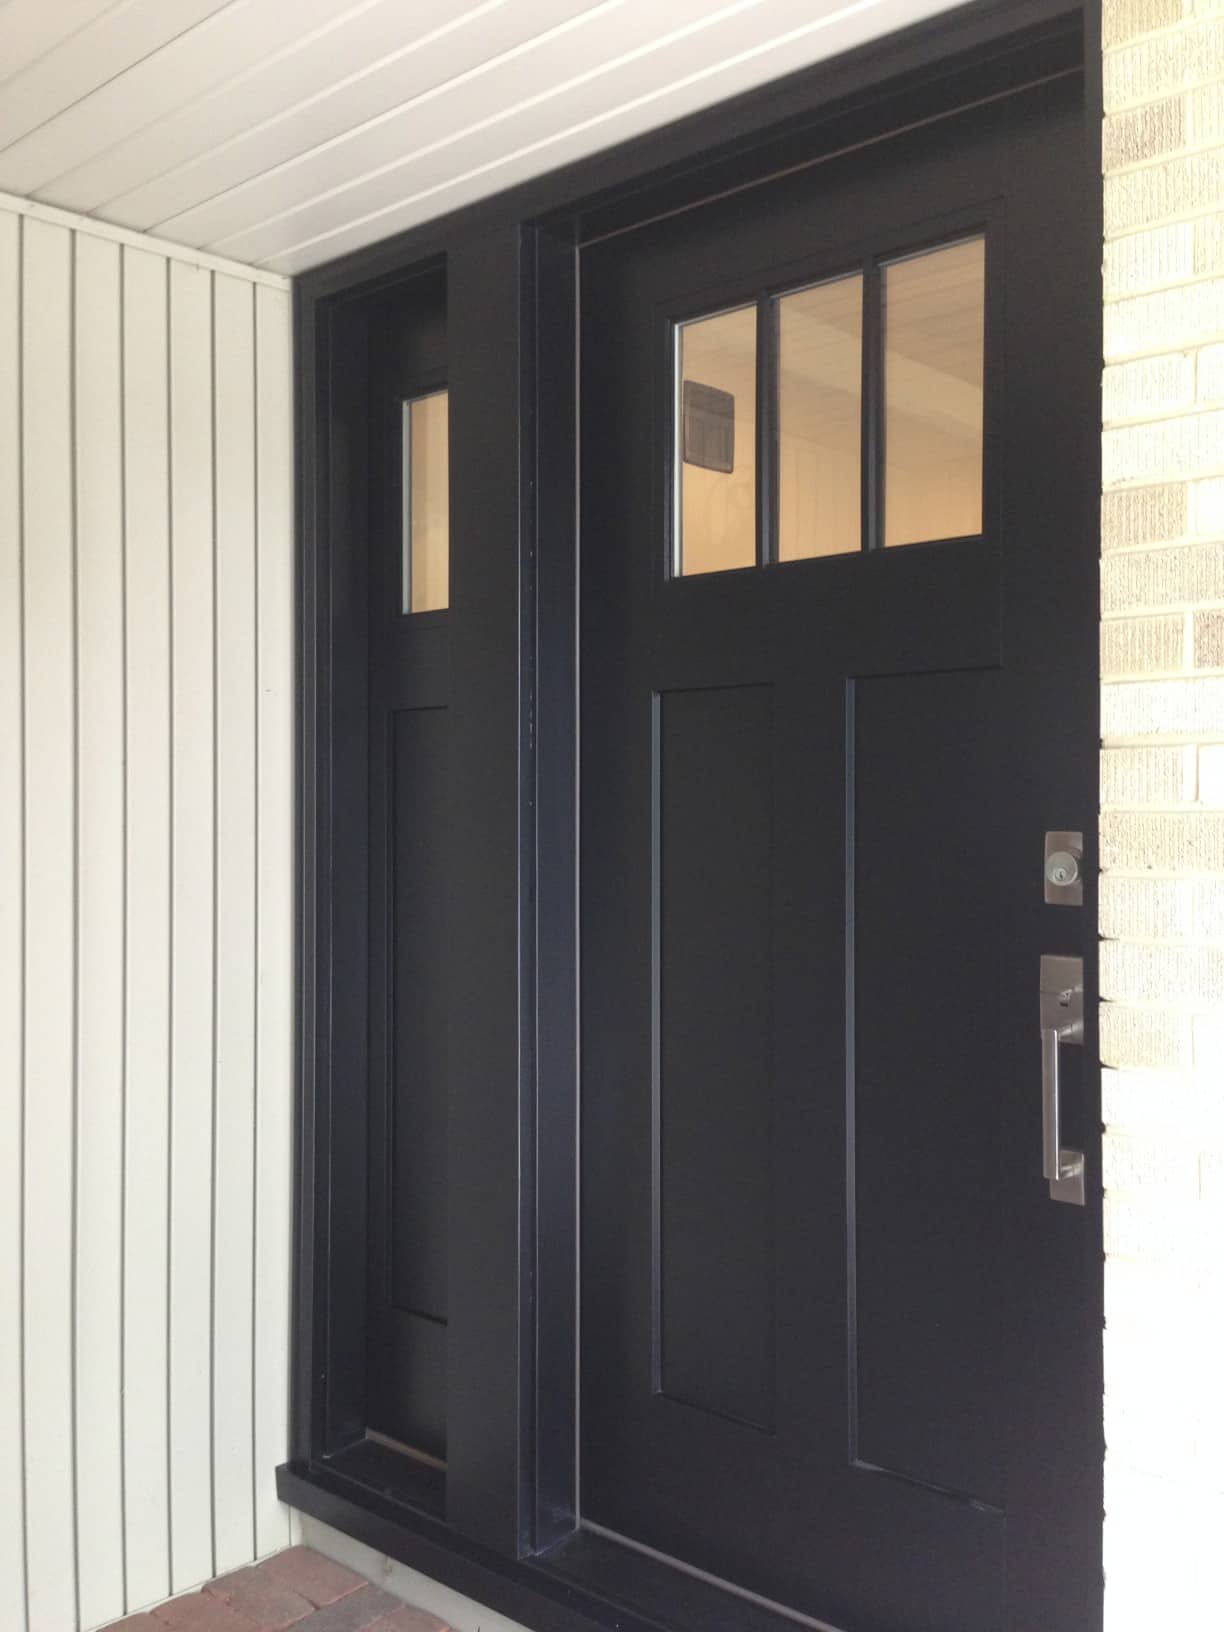 1632 #846947 Chicago's Best Fiberglass Entry Doors Sahara Window And Dors picture/photo Exterior Fiberglass Doors 39991224